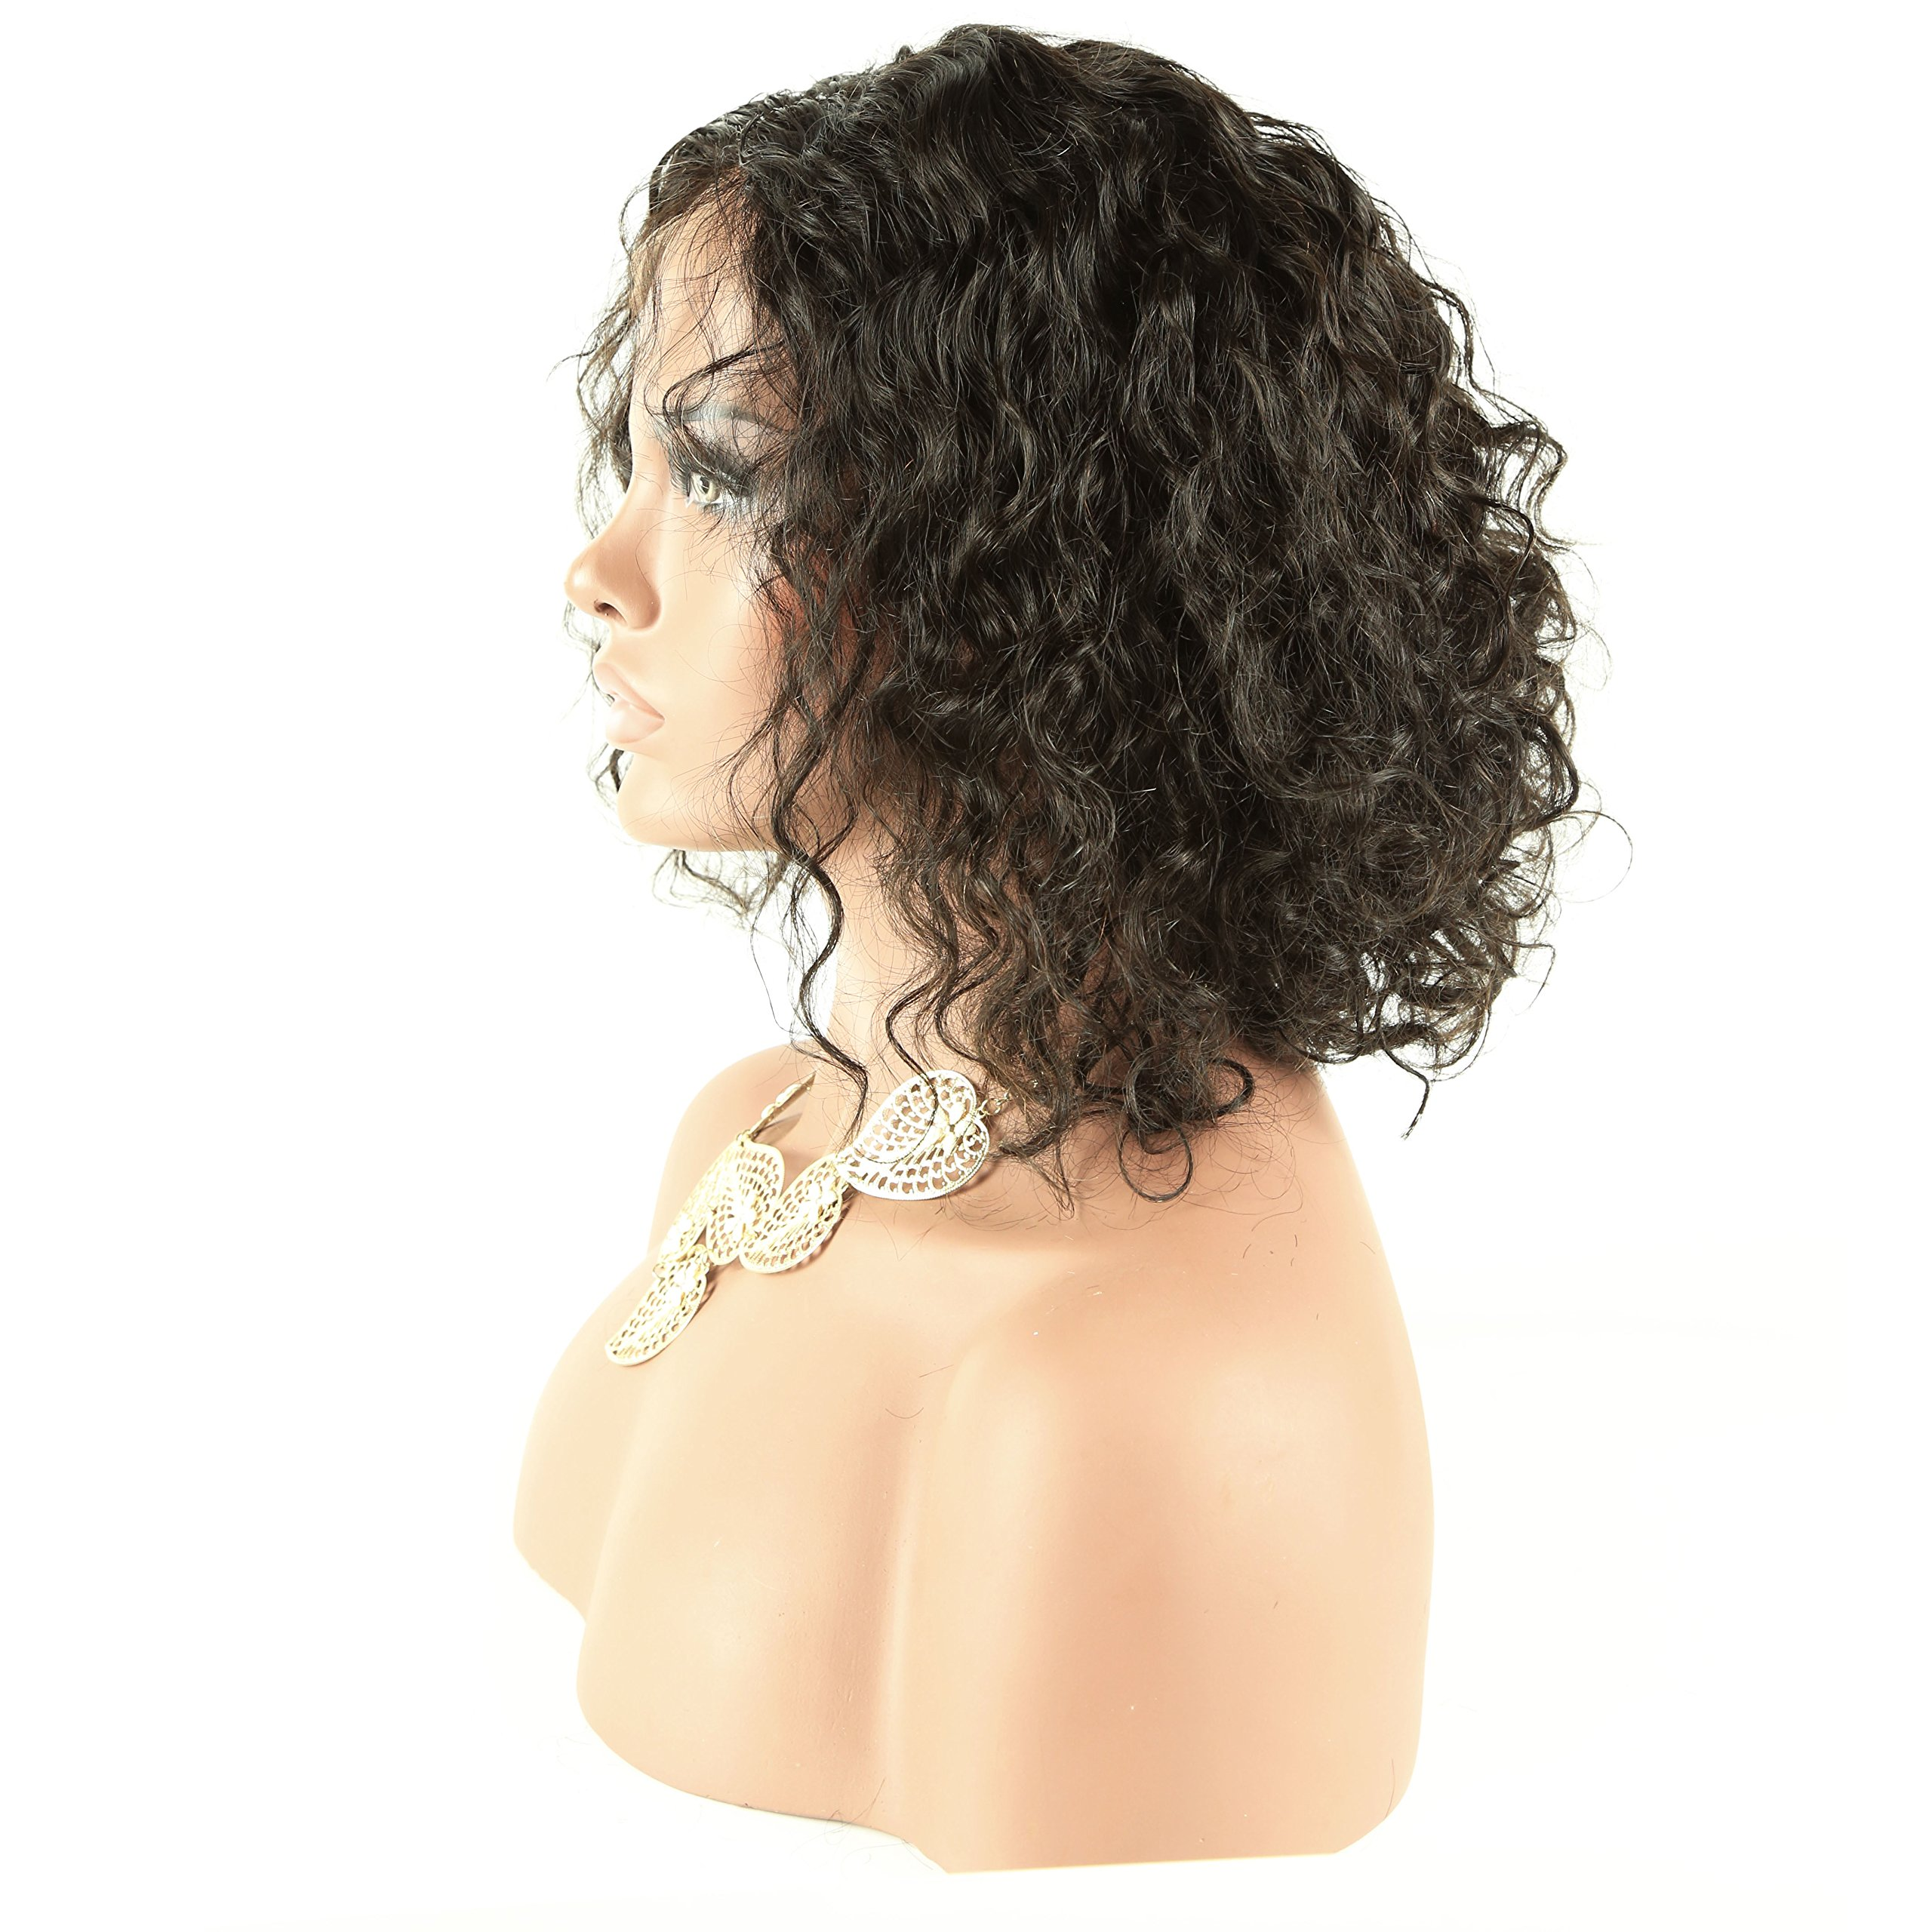 150% Density Brazilian Short Curly Bob Human Hair Lace Front Wigs with Baby Hair for Black Women Natural Color 10 inch